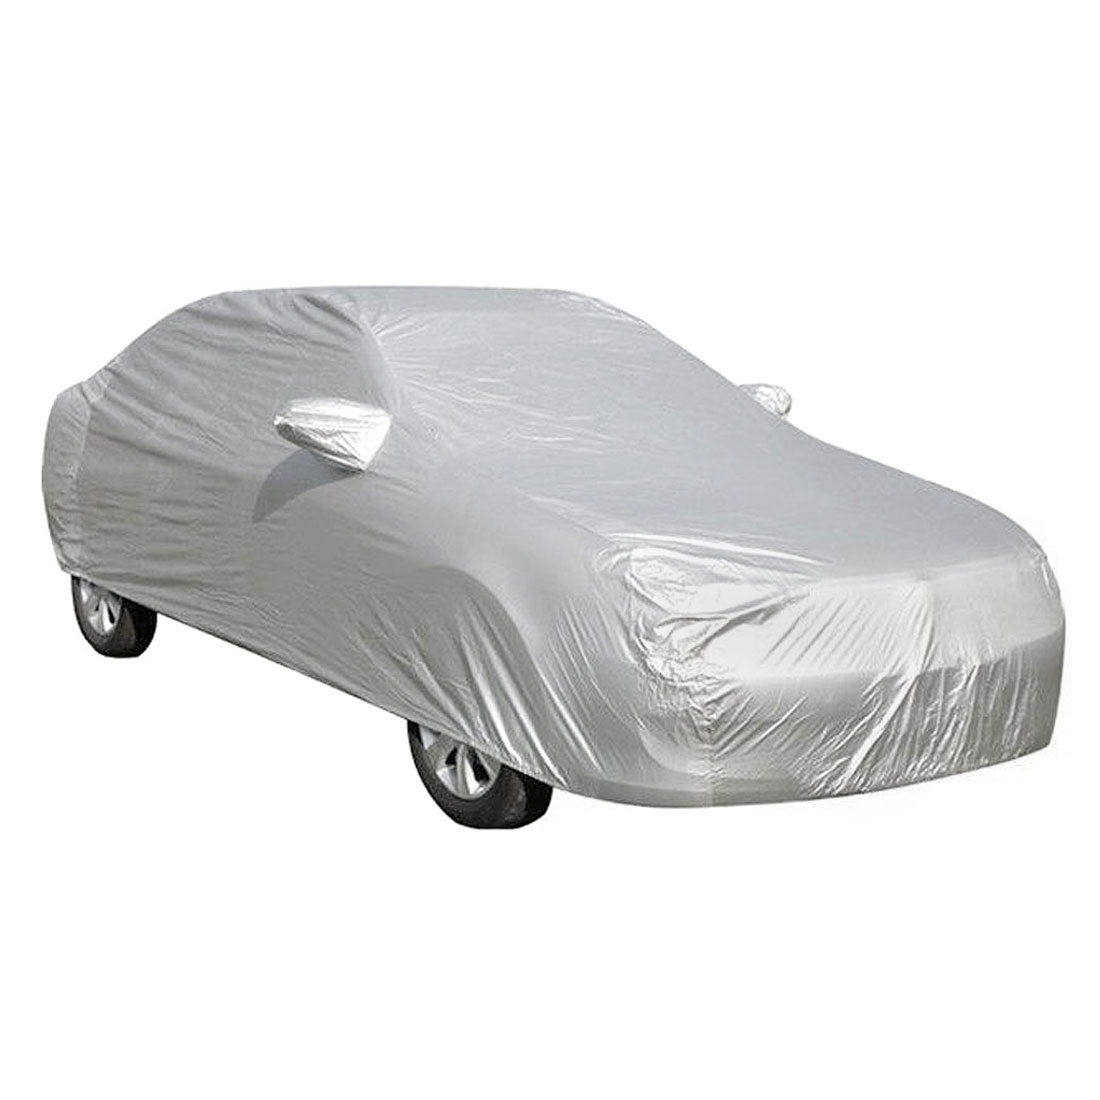 3 XL Car All Weather Outdoor Waterproof Sun UV Anti Dust Rain Protective Cover 4.9 x 1.8 x 1.5m